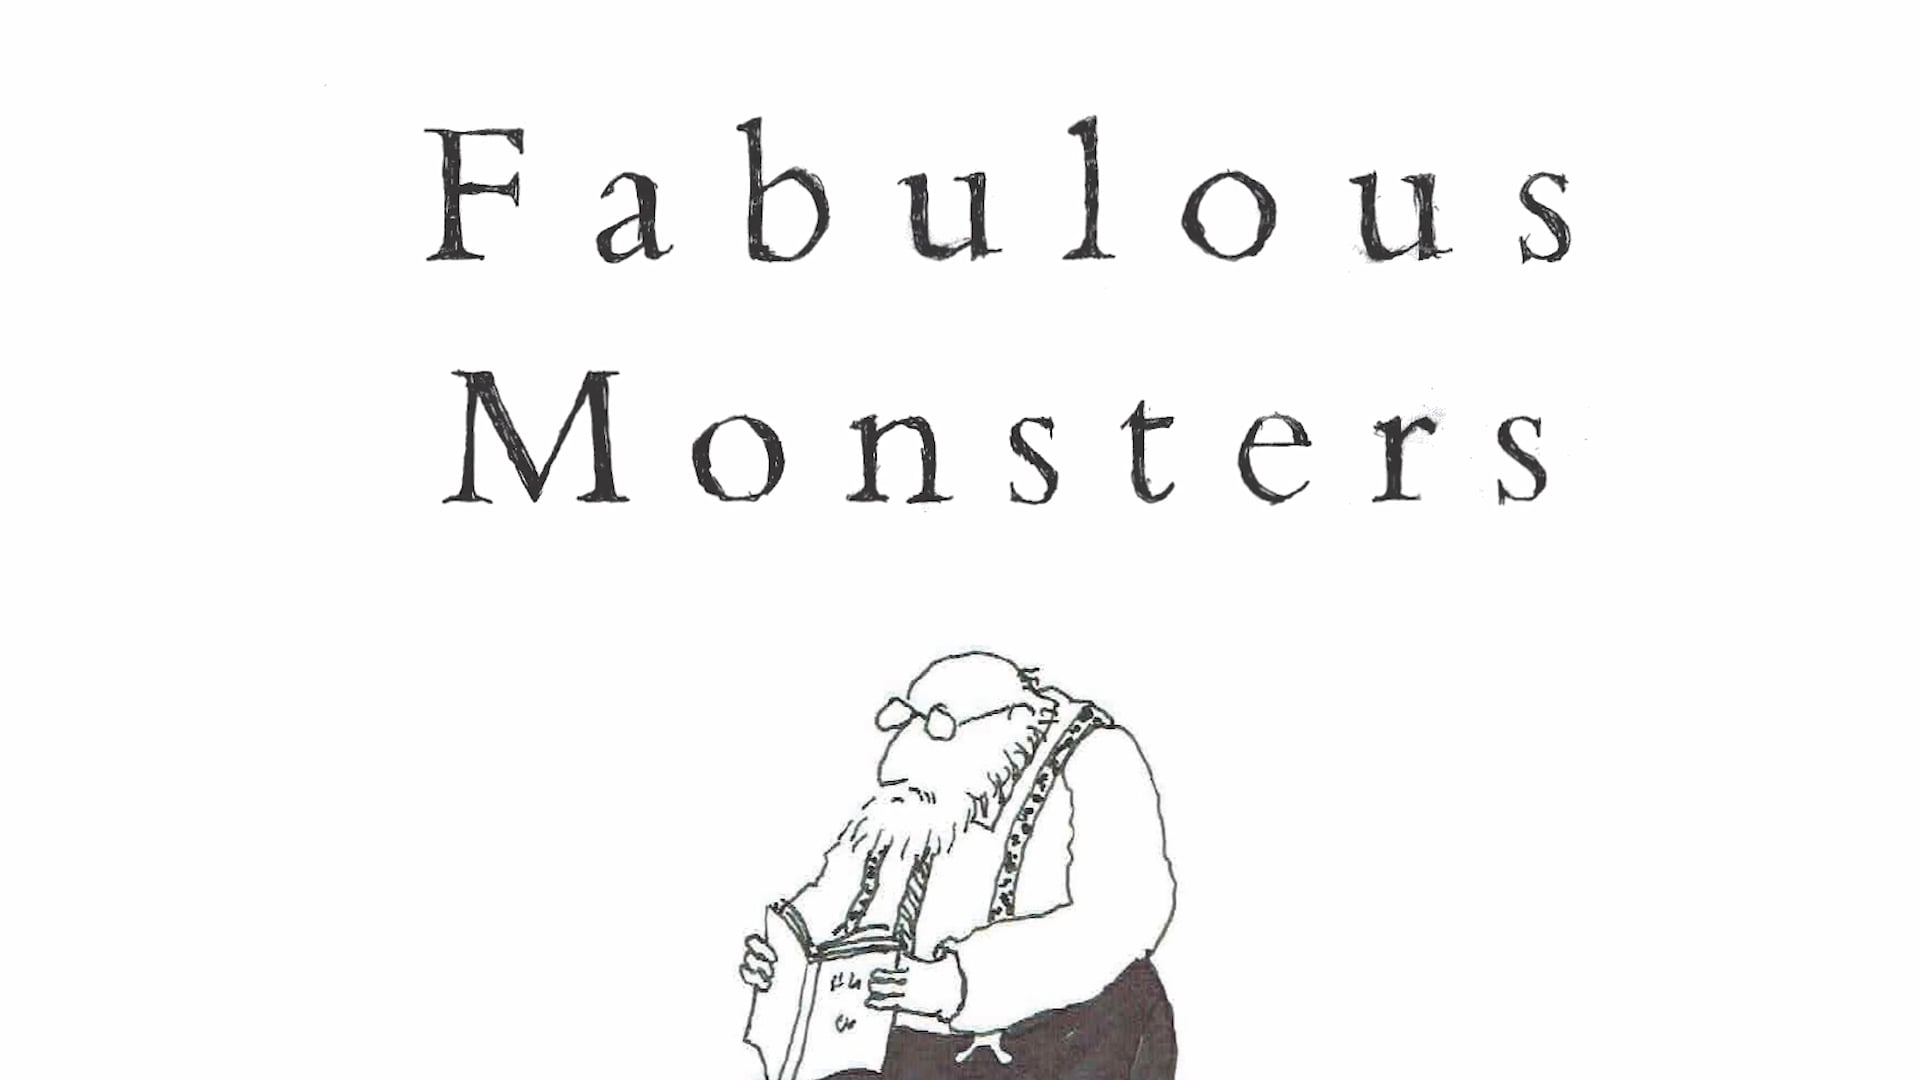 Fabulous Monsters by Alberto Manguel